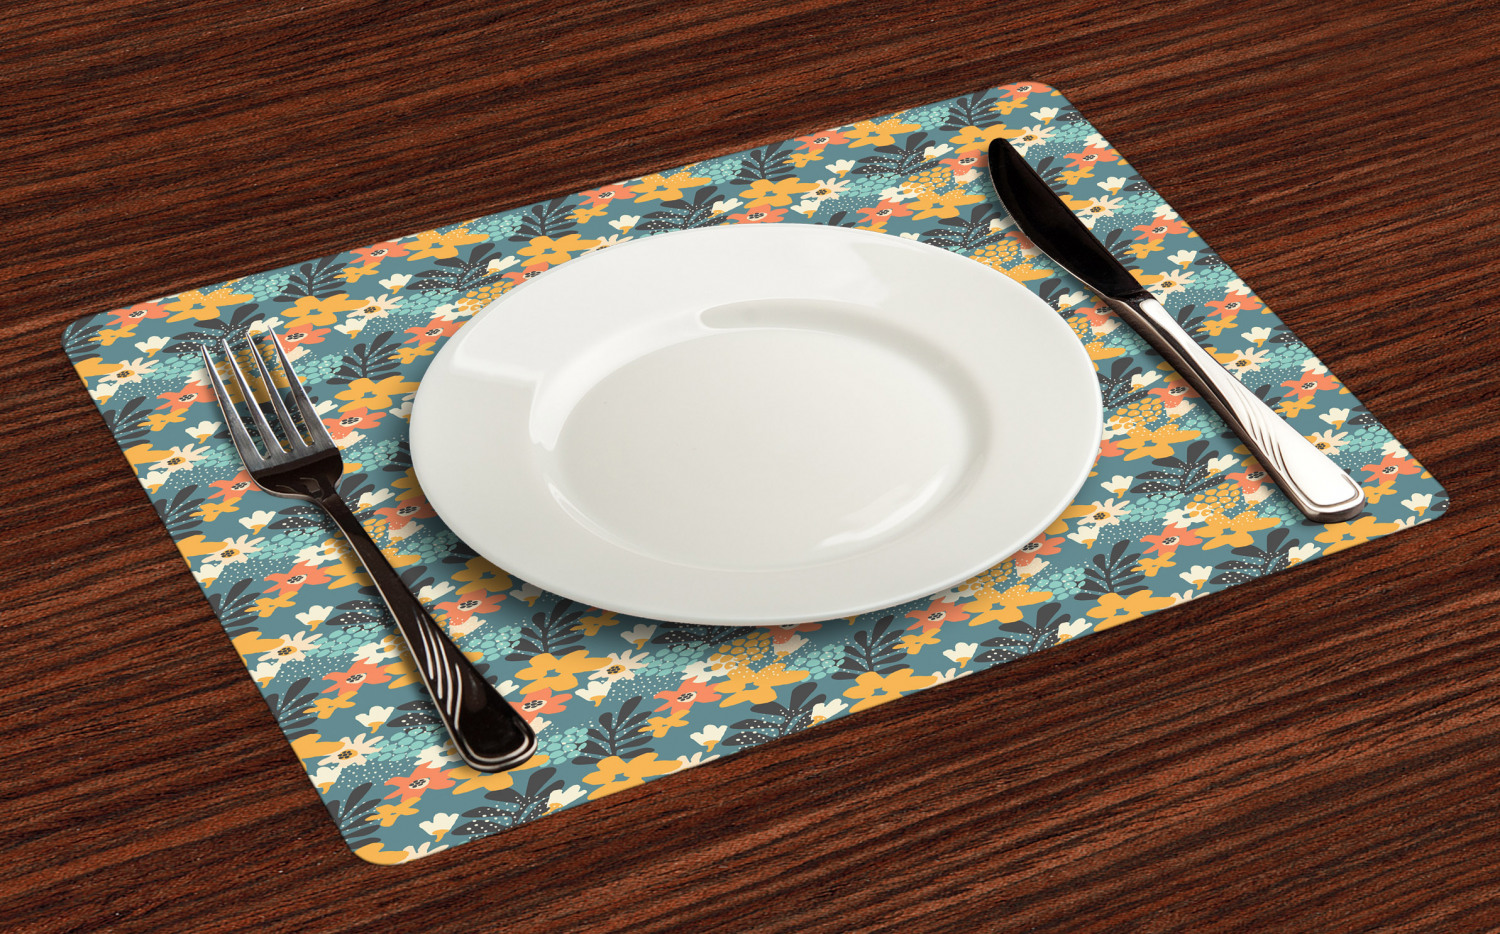 Ambesonne-Flower-Pattern-Placemat-Set-of-4-Fabric-Place-Mats-for-Table-Decor thumbnail 17